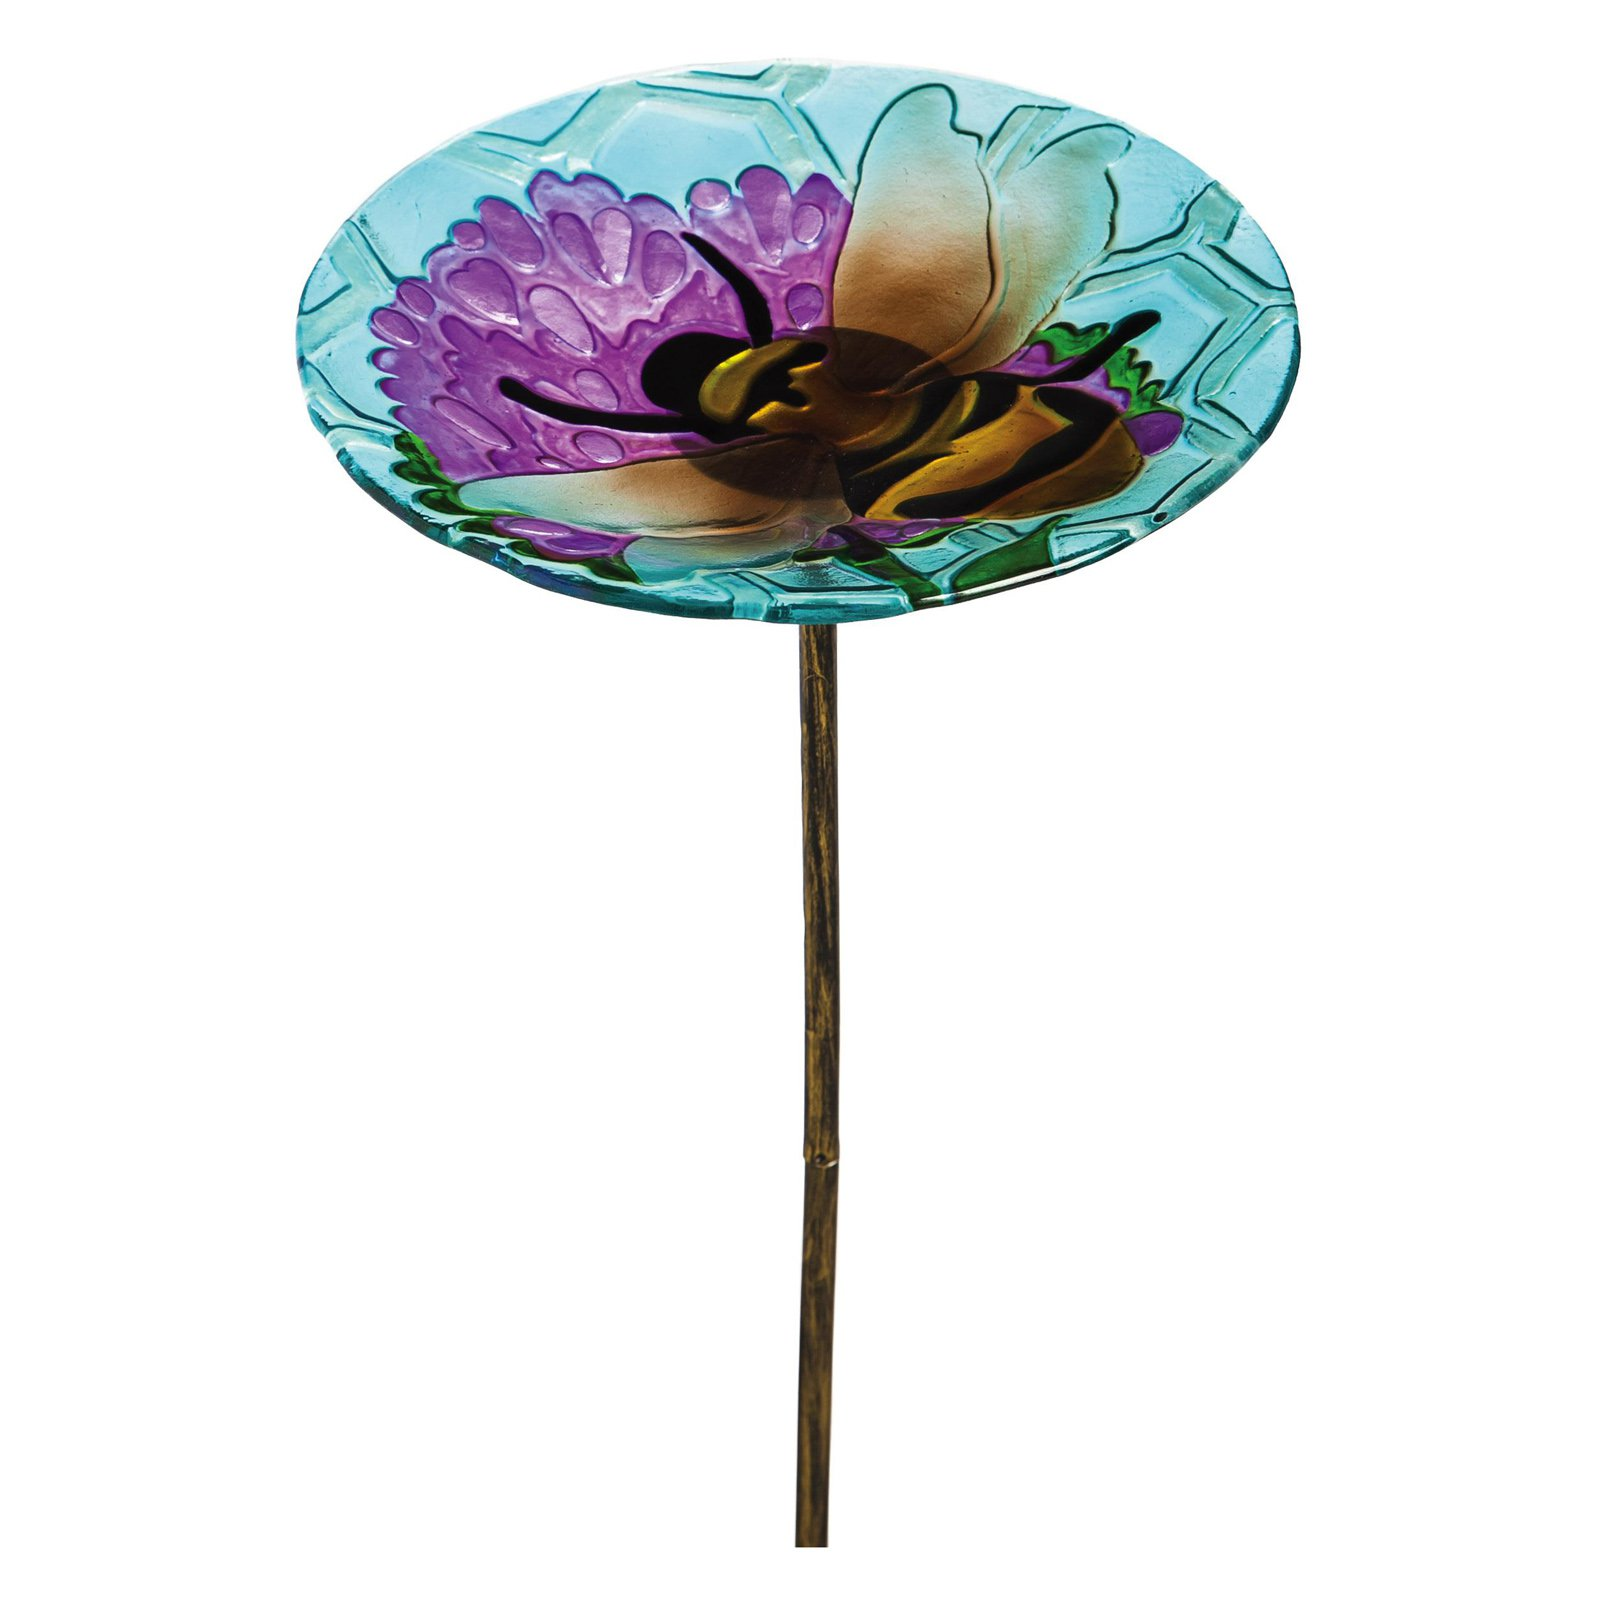 Evergreen Enterprises Busy Bee Days 10 in. Birdbath with Stake by Evergreen Enterprises, Inc.